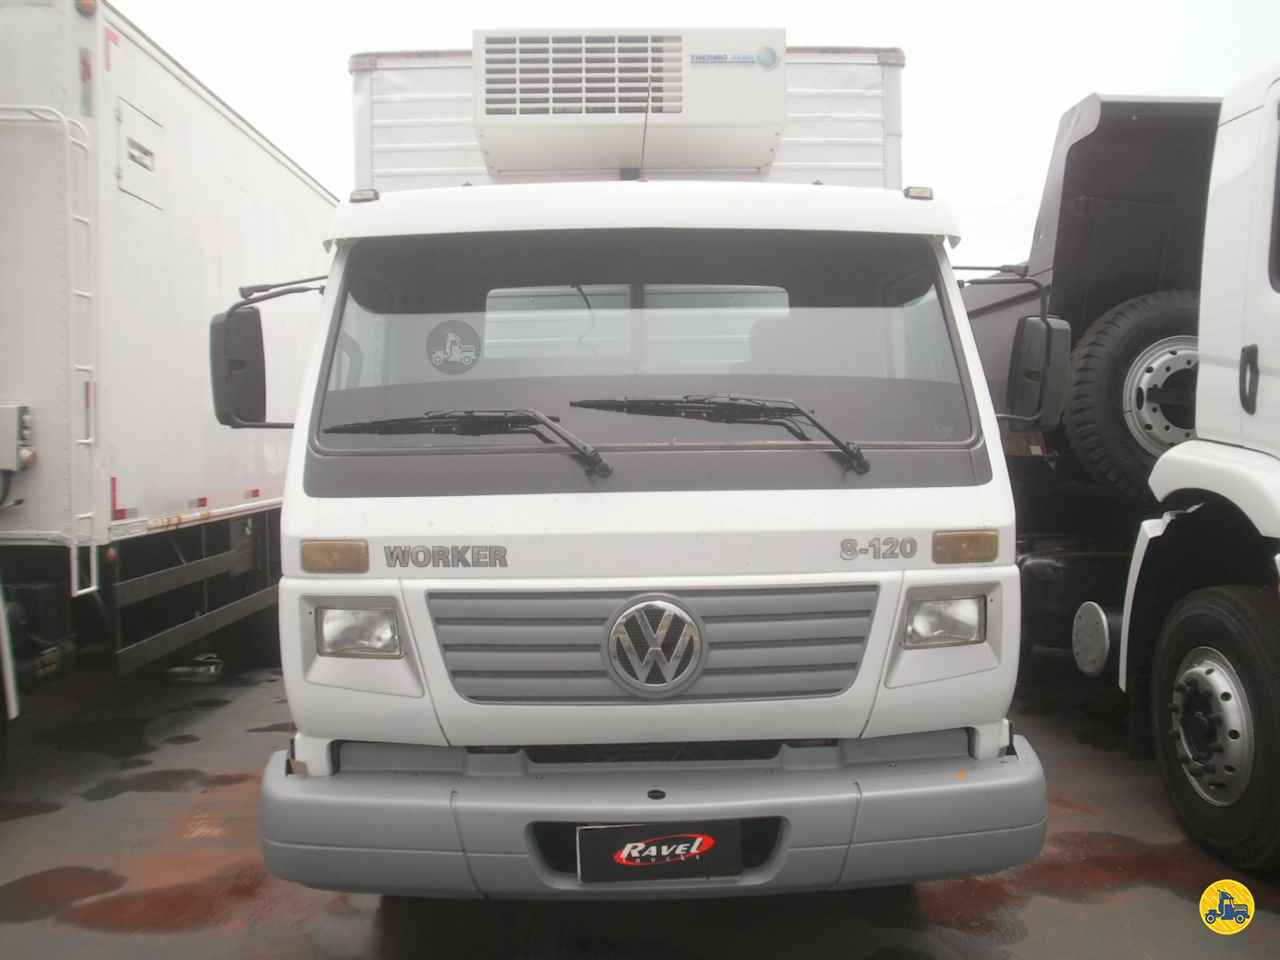 VOLKSWAGEN VW 8120 500000km 2006/2006 Ravel Trucks